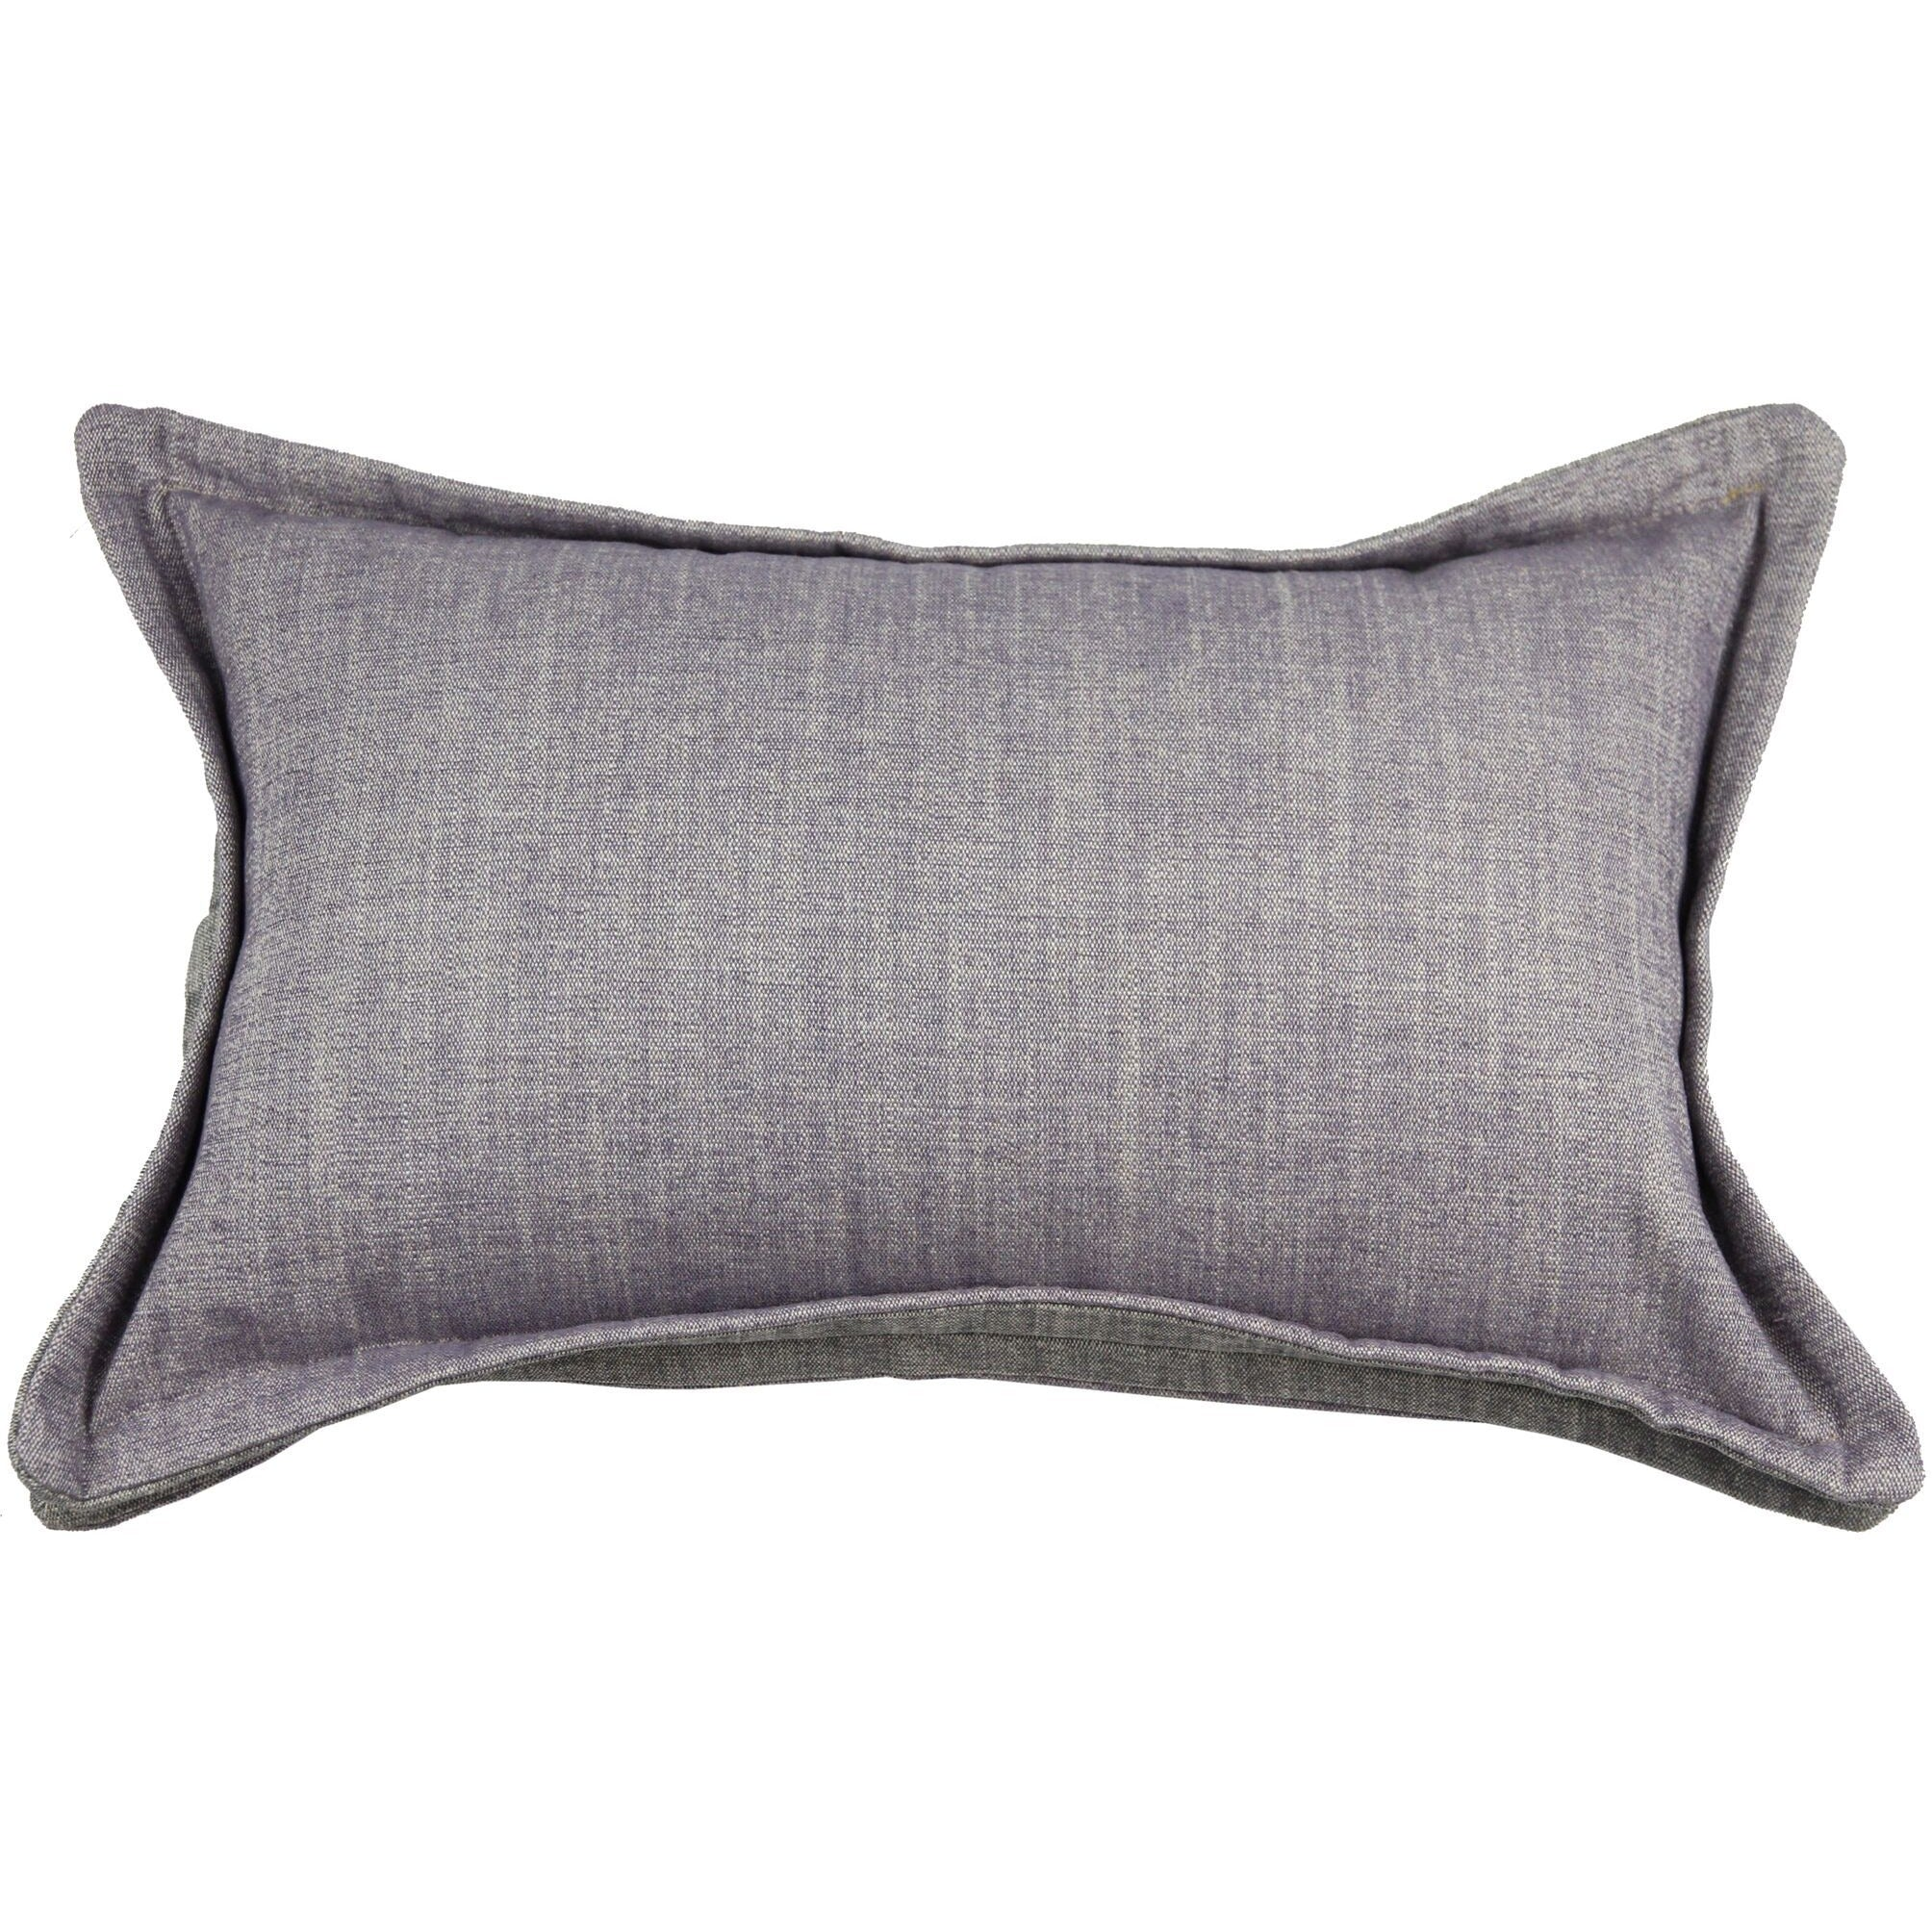 McAlister Textiles Rhumba Accent Lilac Purple + Grey Cushion Cushions and Covers Cover Only 50cm x 30cm